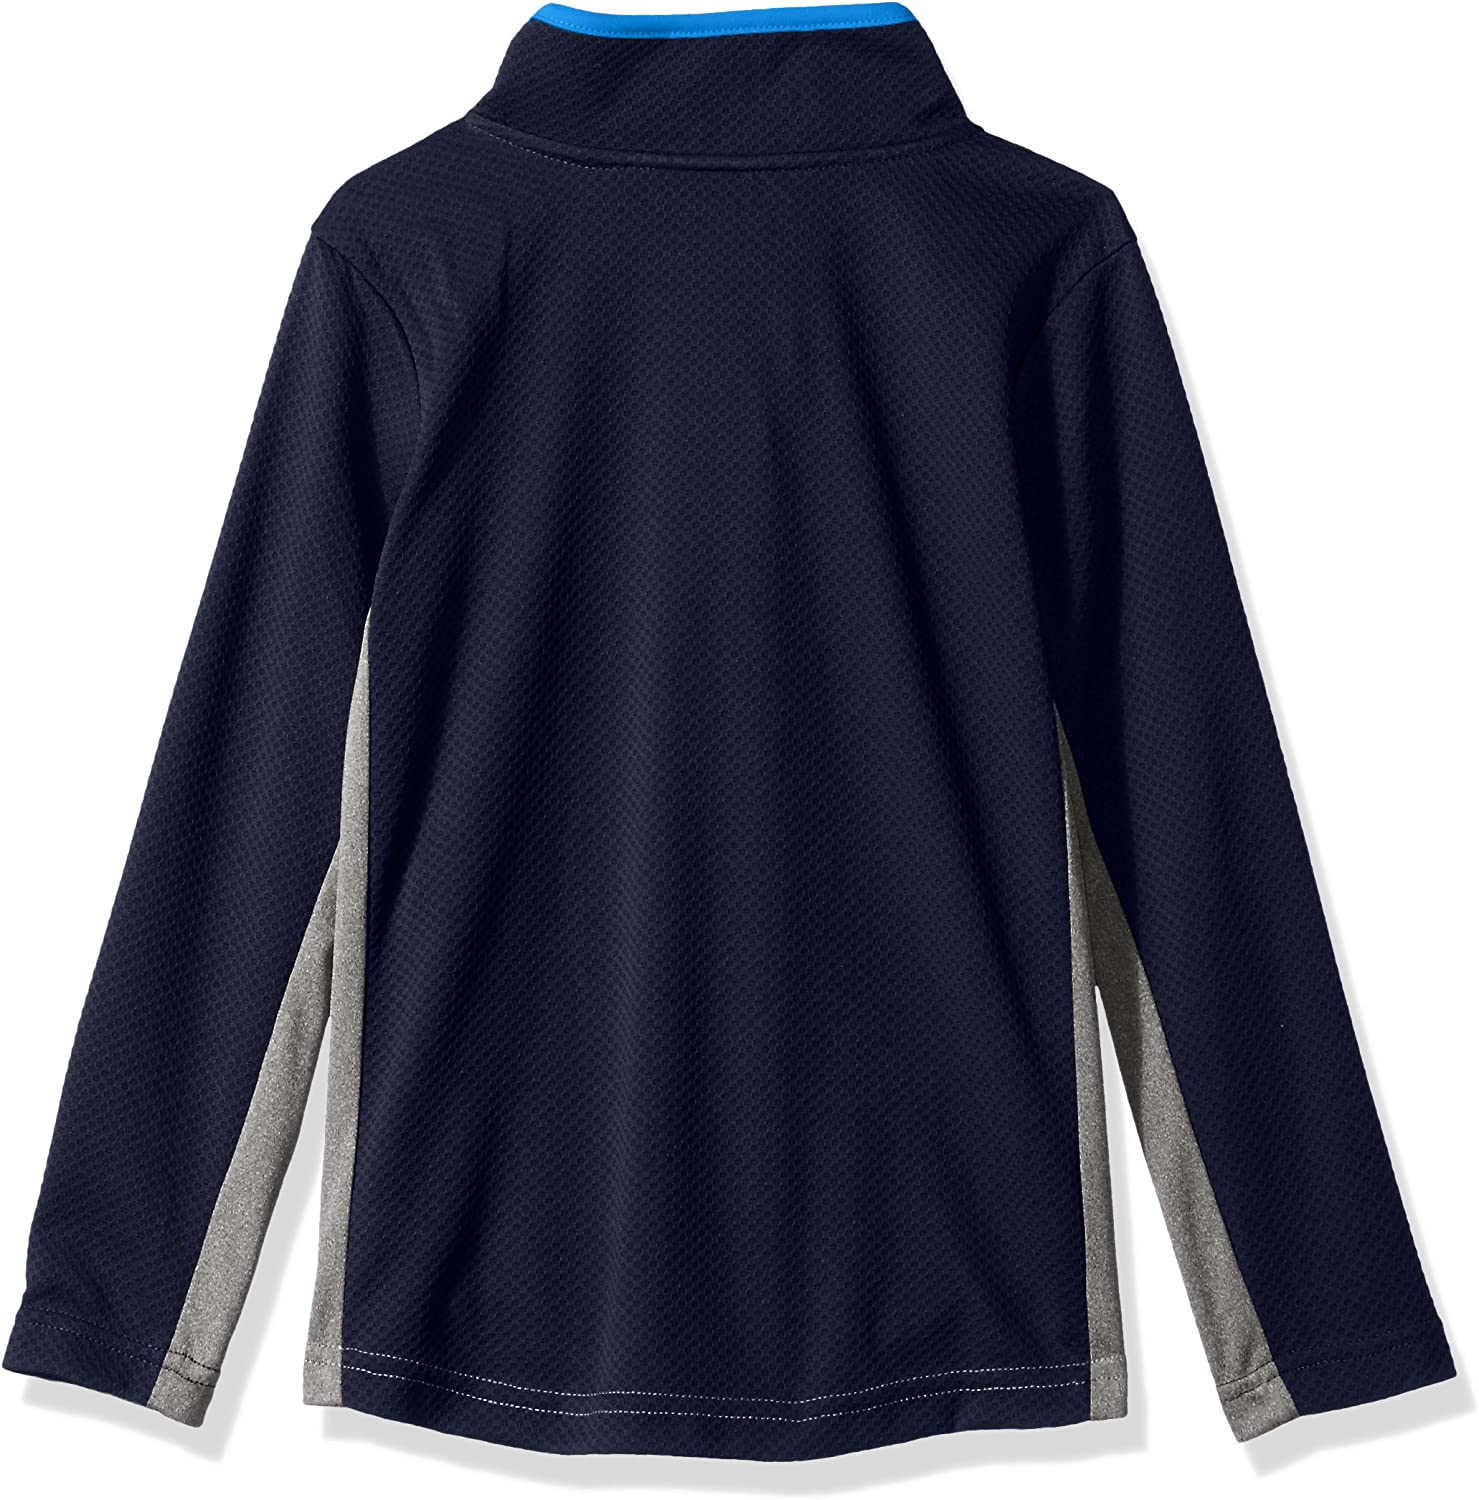 NFL Youth Boys Matrix 1//4 Zip Top-Light Charcoal-L 14-16 Los Angeles Chargers